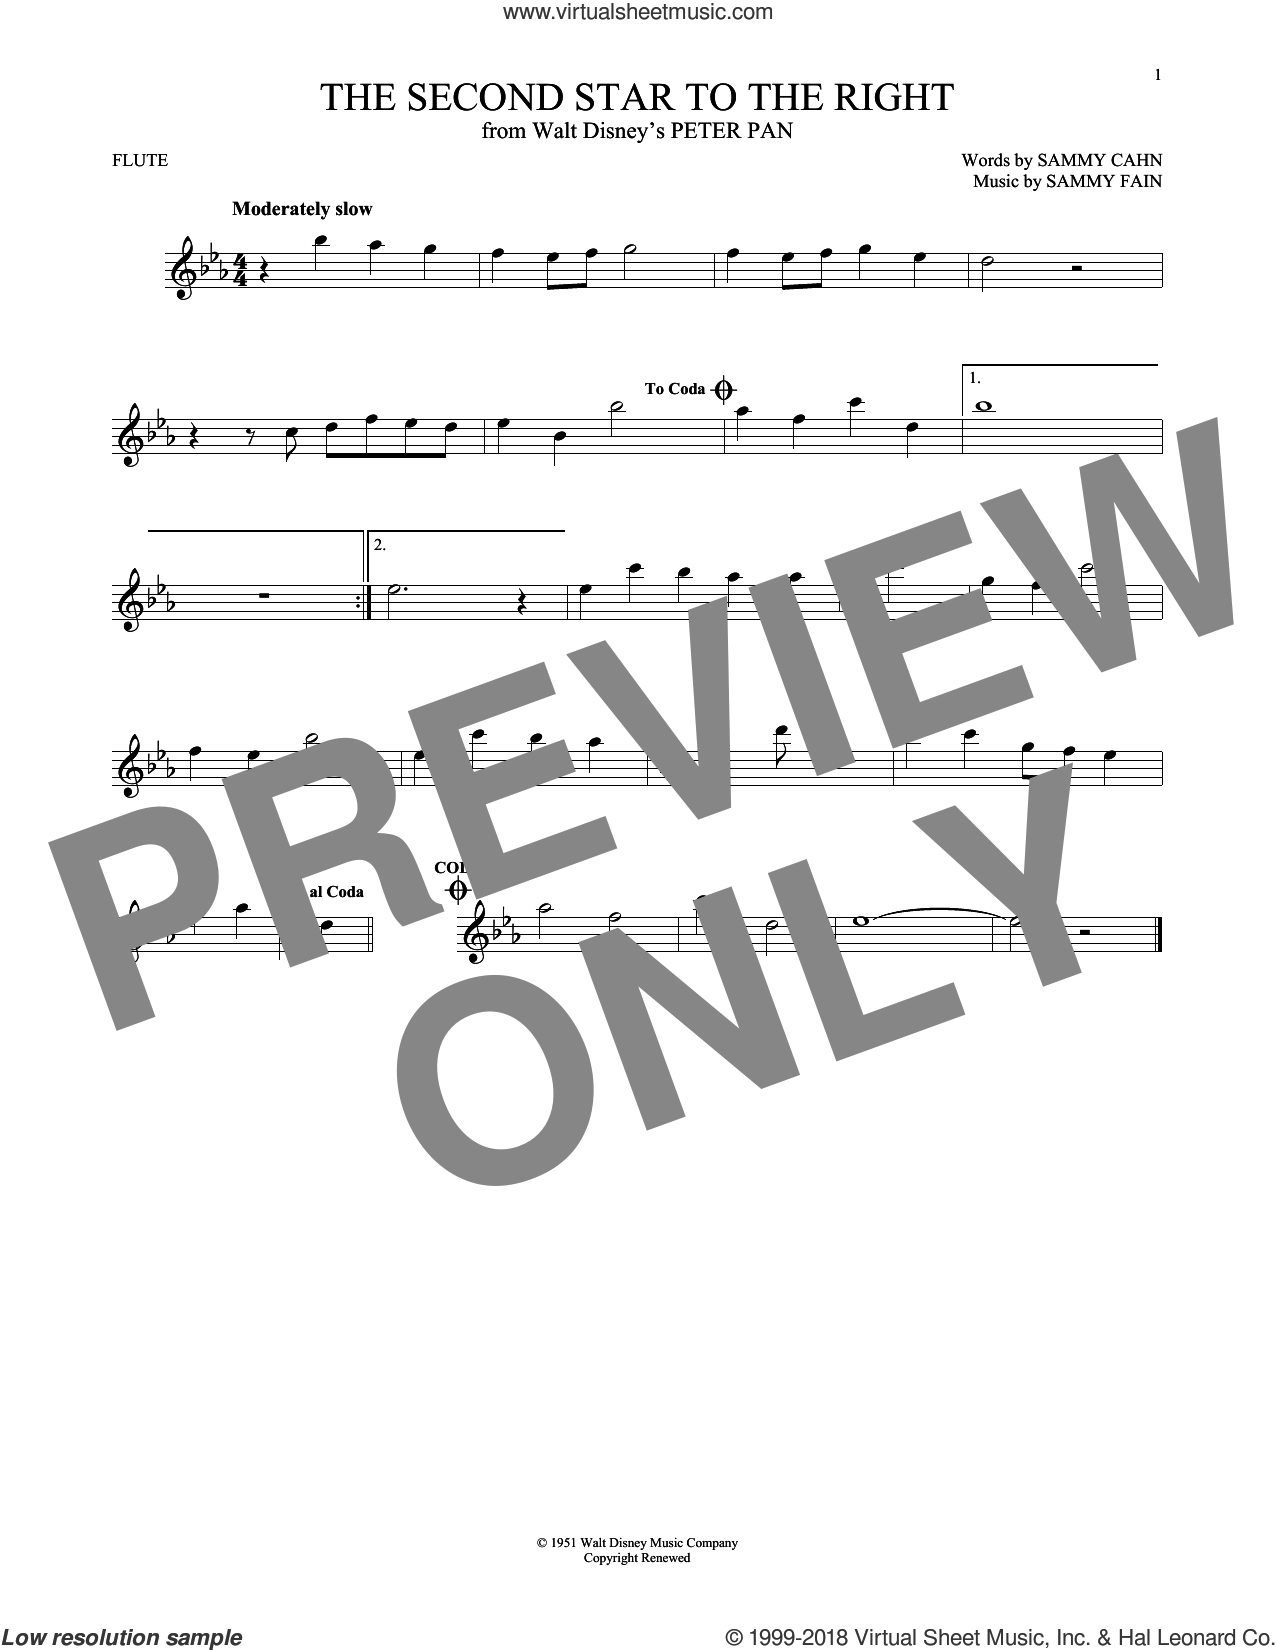 The Second Star To The Right sheet music for flute solo by Sammy Cahn and Sammy Fain, intermediate skill level